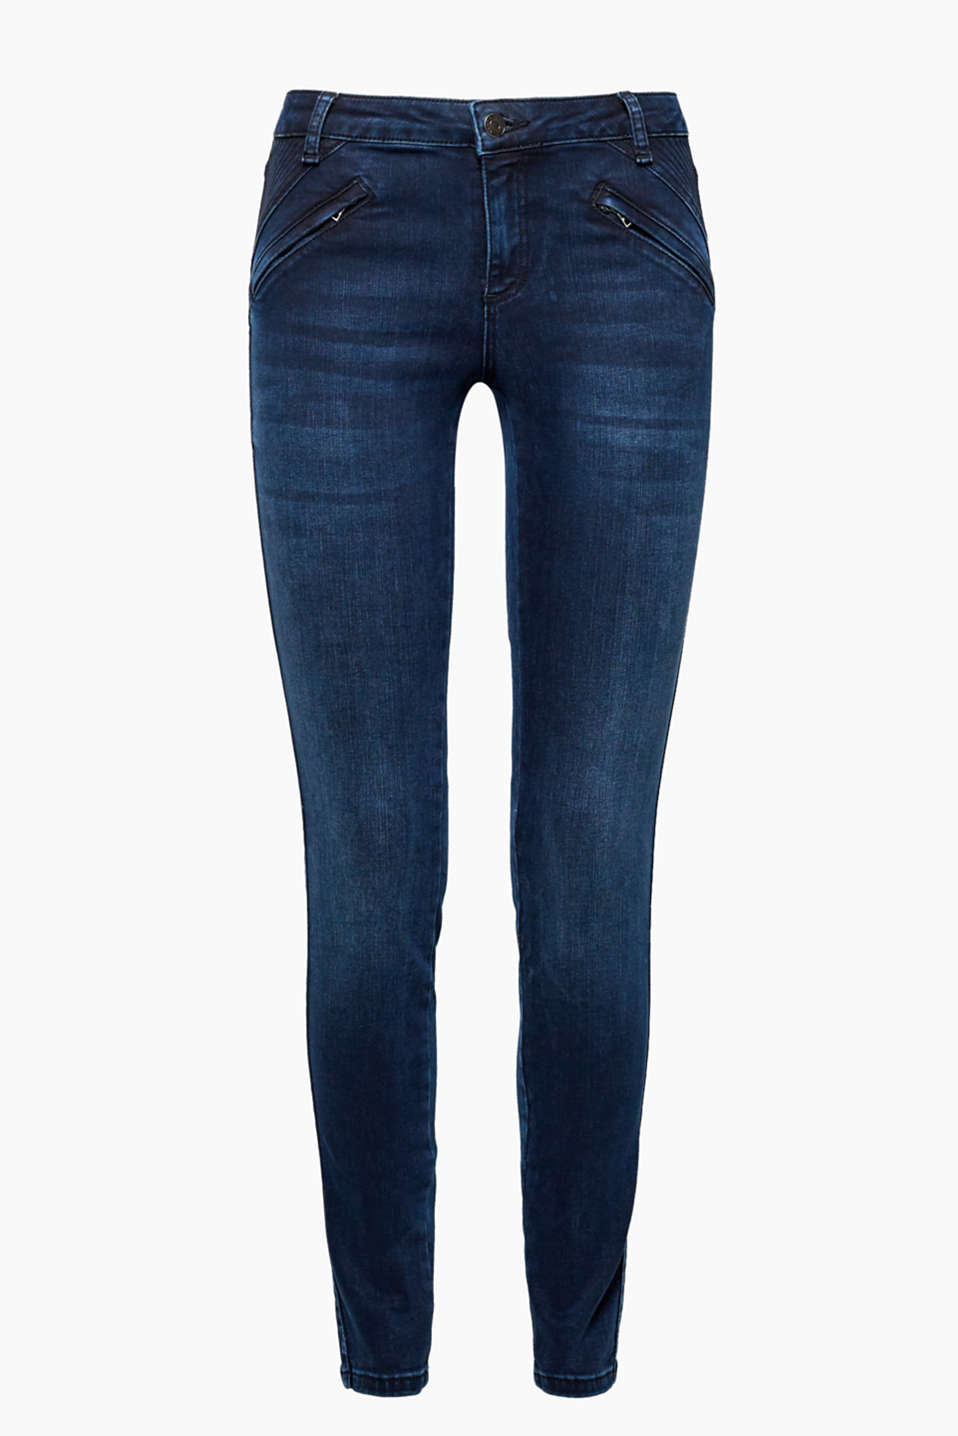 They create a sensational silhouette: stretch jeans with distinctive zip pockets and shaping effects.